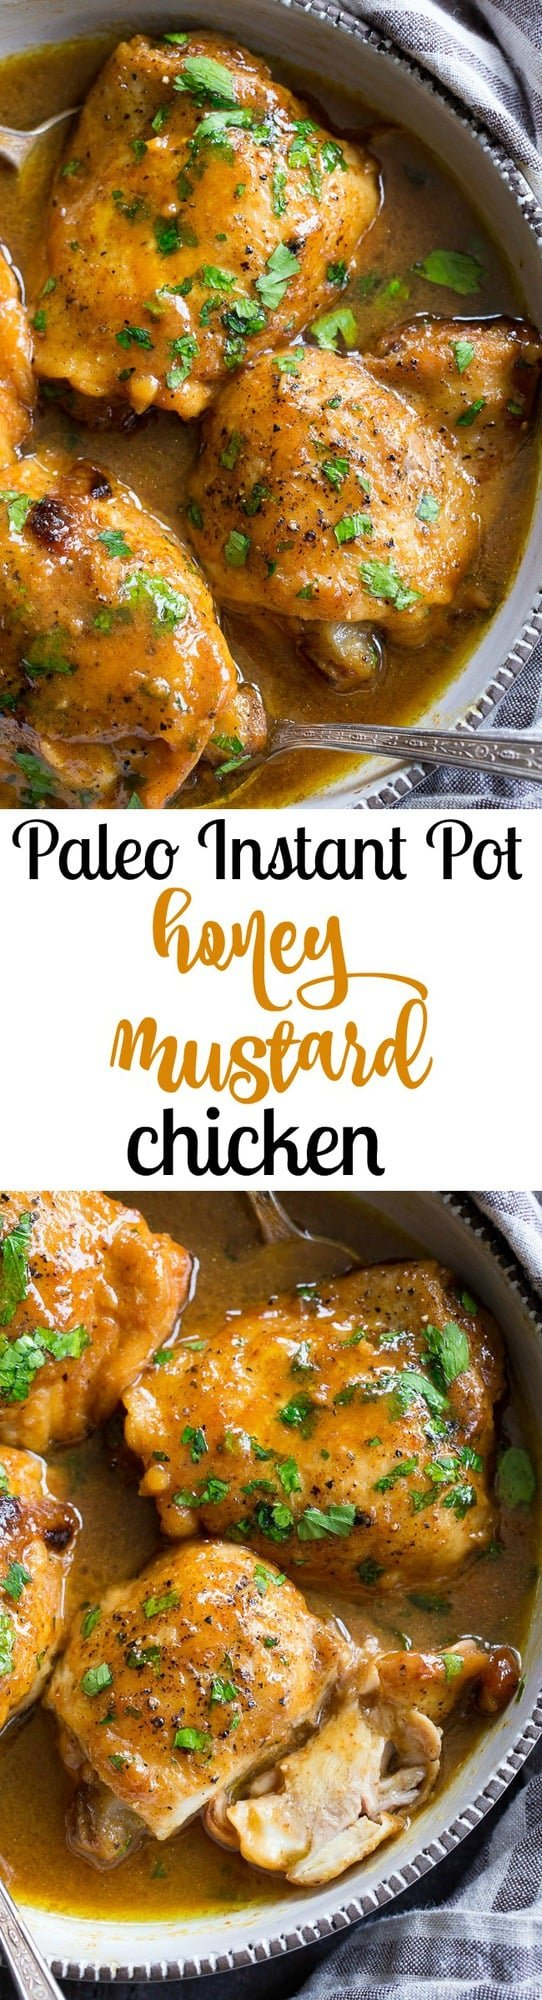 This paleo honey mustard chicken comes together in just 30 minutes in the Instant Pot!  Skin-on chicken thighs are perfectly cooked in a sauce that's packed with tons of sweet tangy flavor.  There's even a Whole30 friendly option using dates instead of honey to sweeten the sauce!  Family approved and sure to become a dinner favorite.